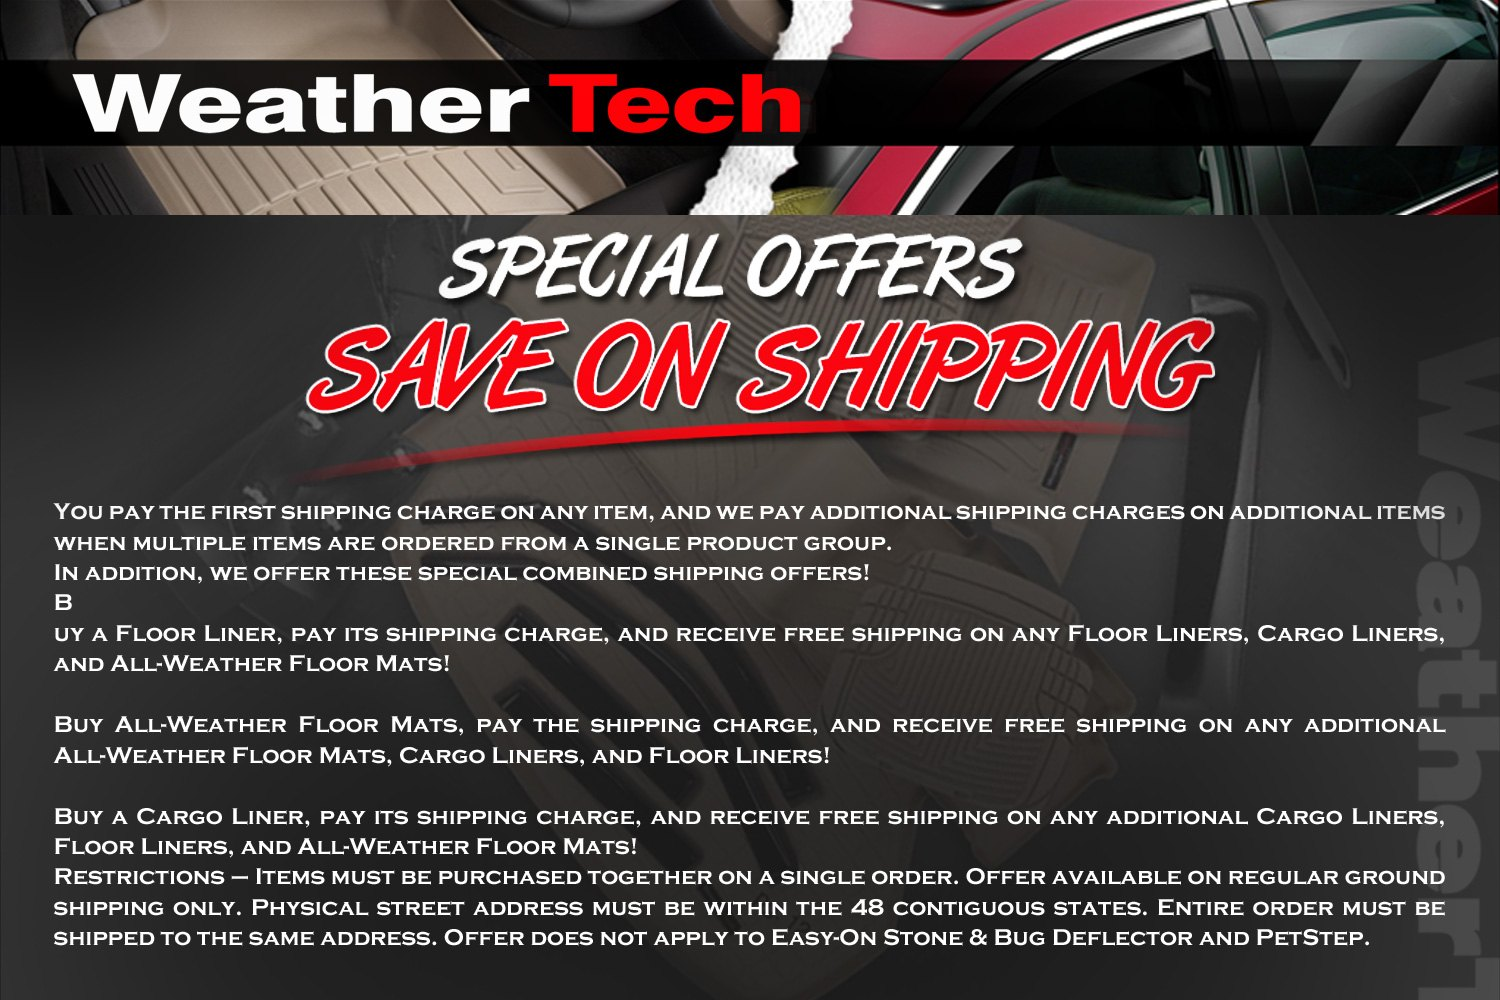 weathertech coupons codes